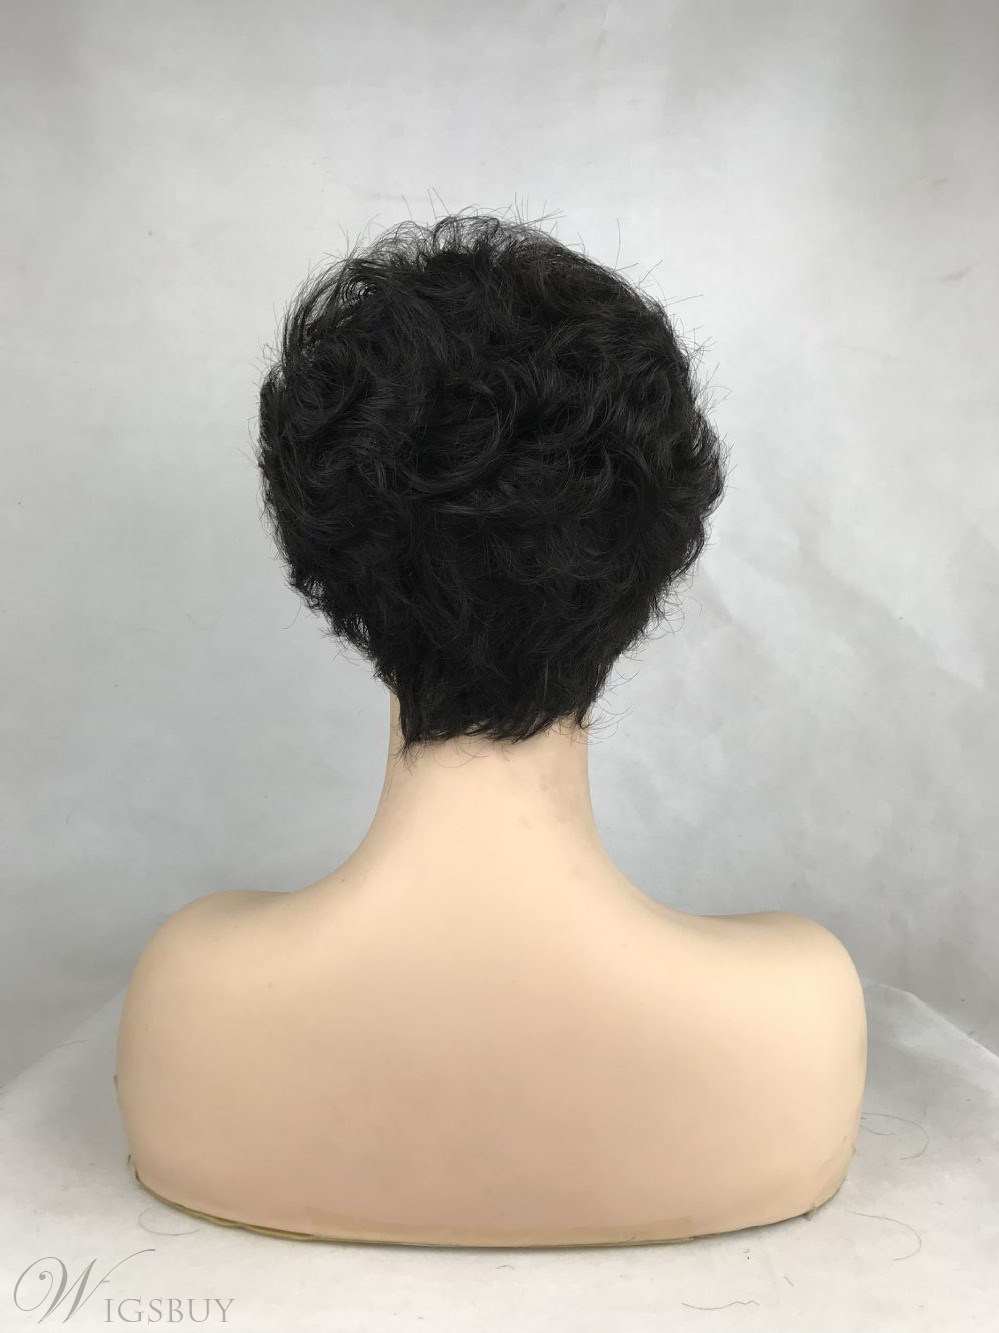 Fashion Black Short Curly Wavy Wig with Hair Bangs Capless Synthetic Hair Wig For Women 10inch